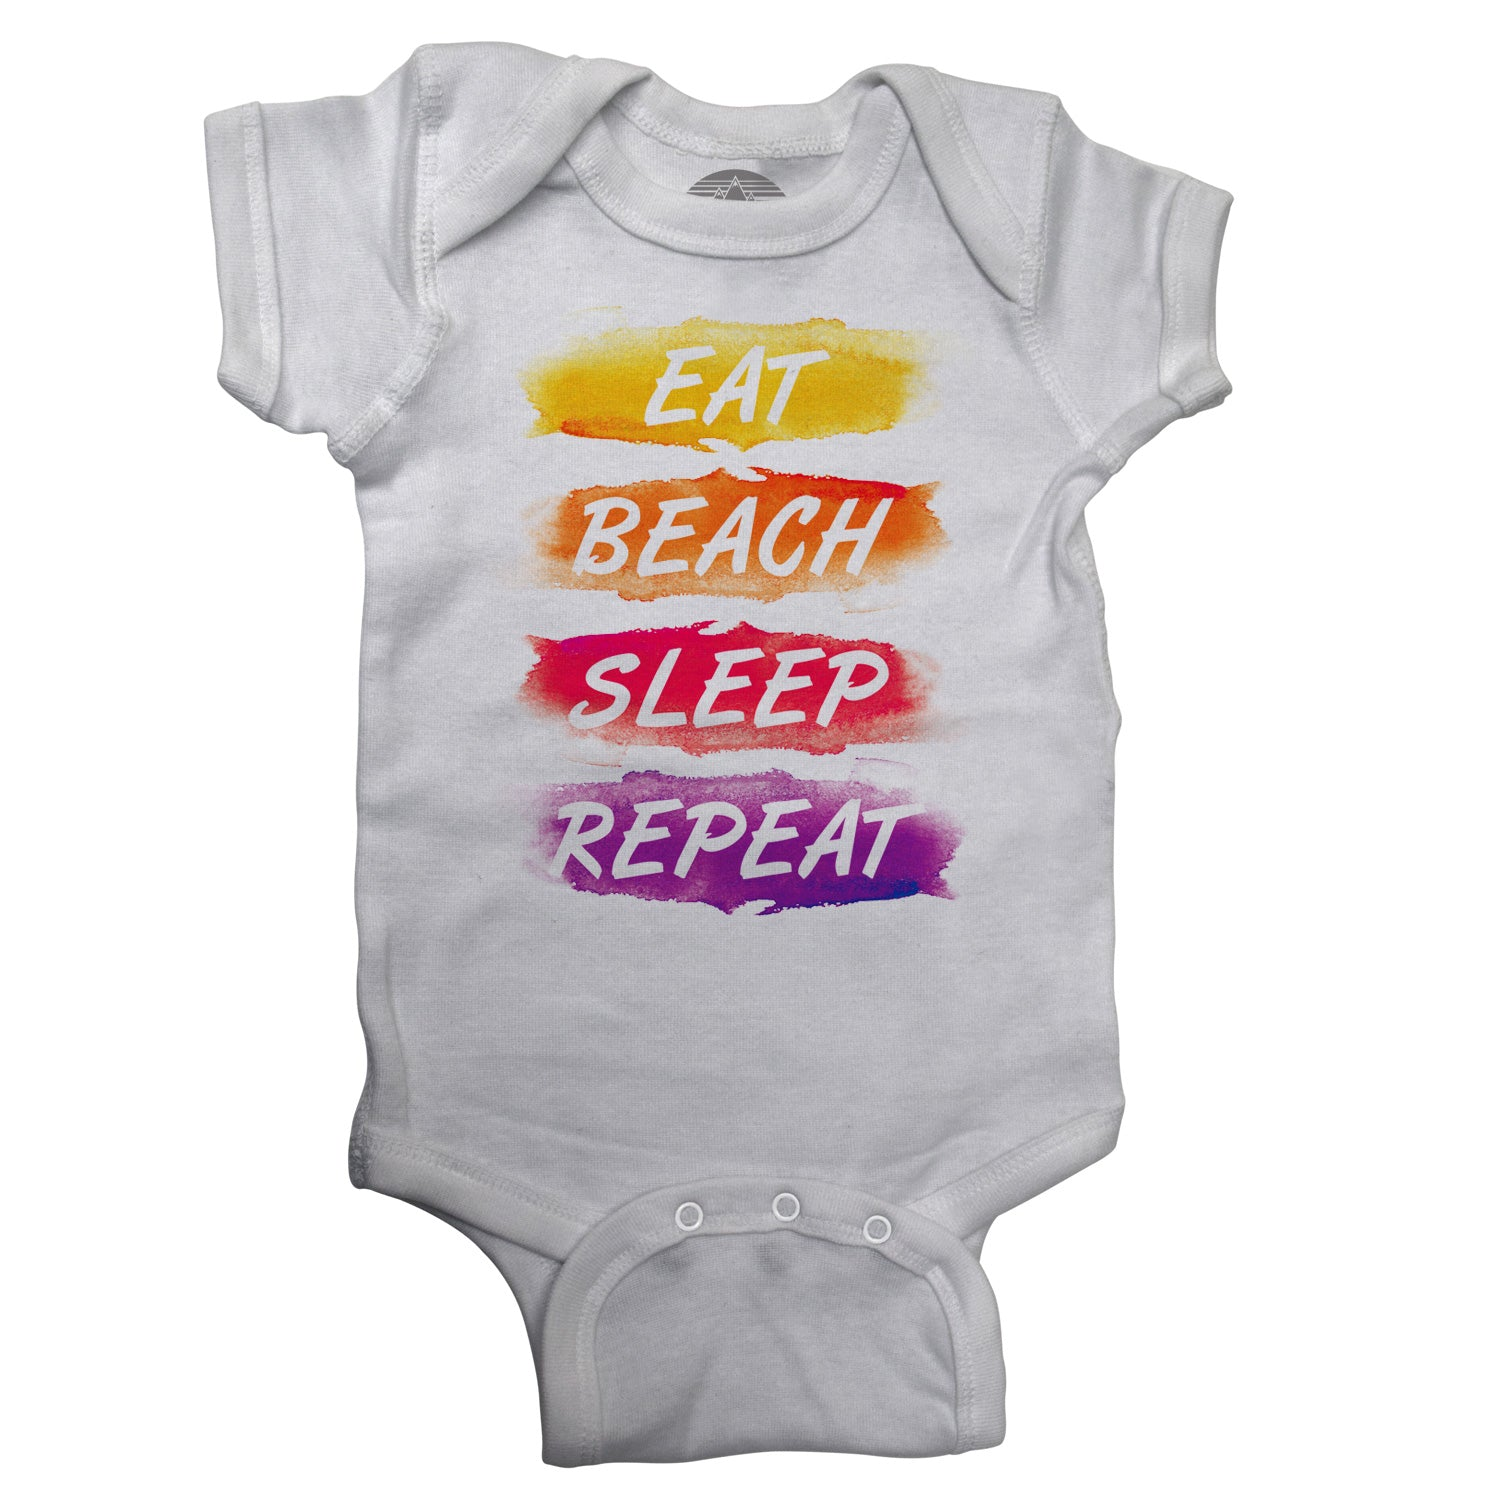 Eat Beach Sleep Repeat Infant Bodysuit - Unisex Fit